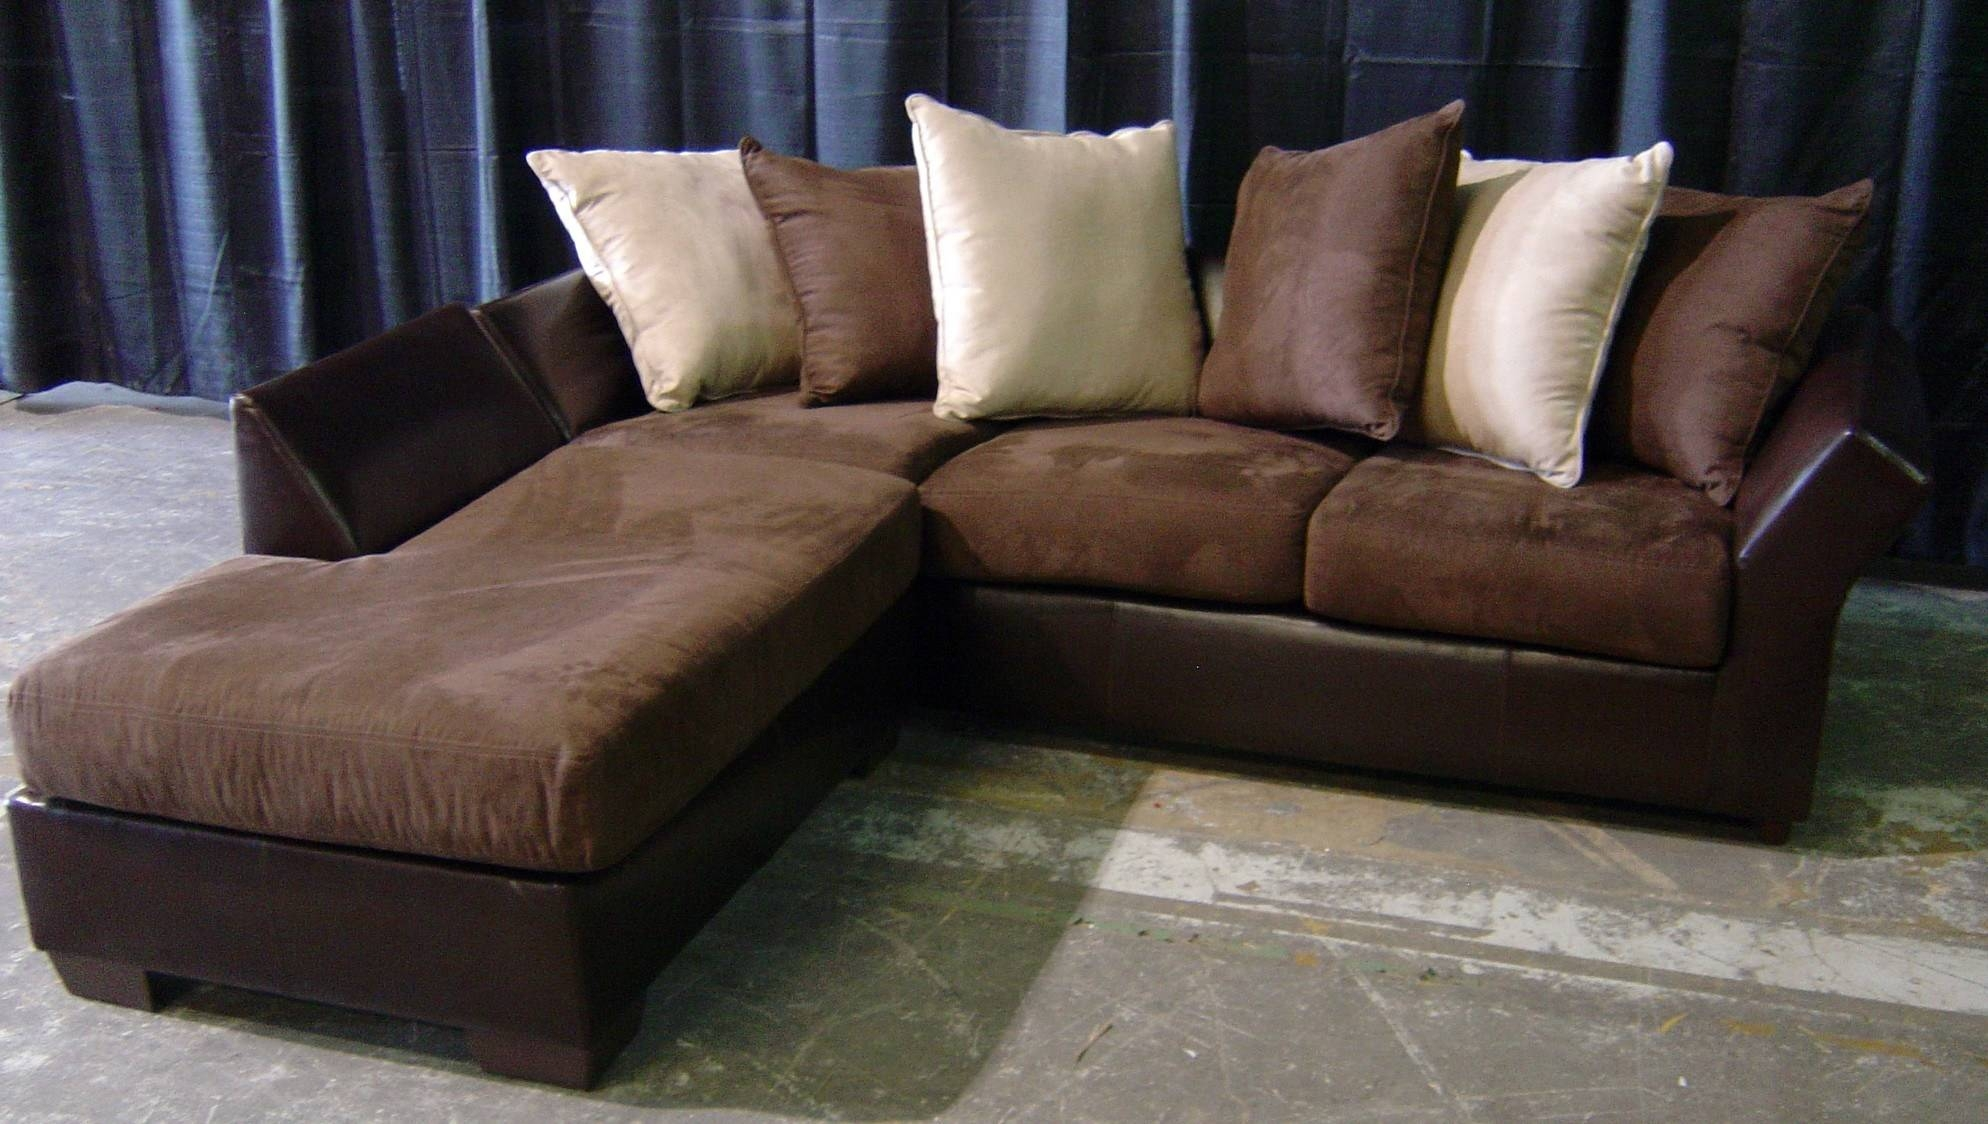 Furniture: Brown Leather Sectional Couchescraigslist Missoula for Craigslist Sectional Sofa (Image 7 of 30)